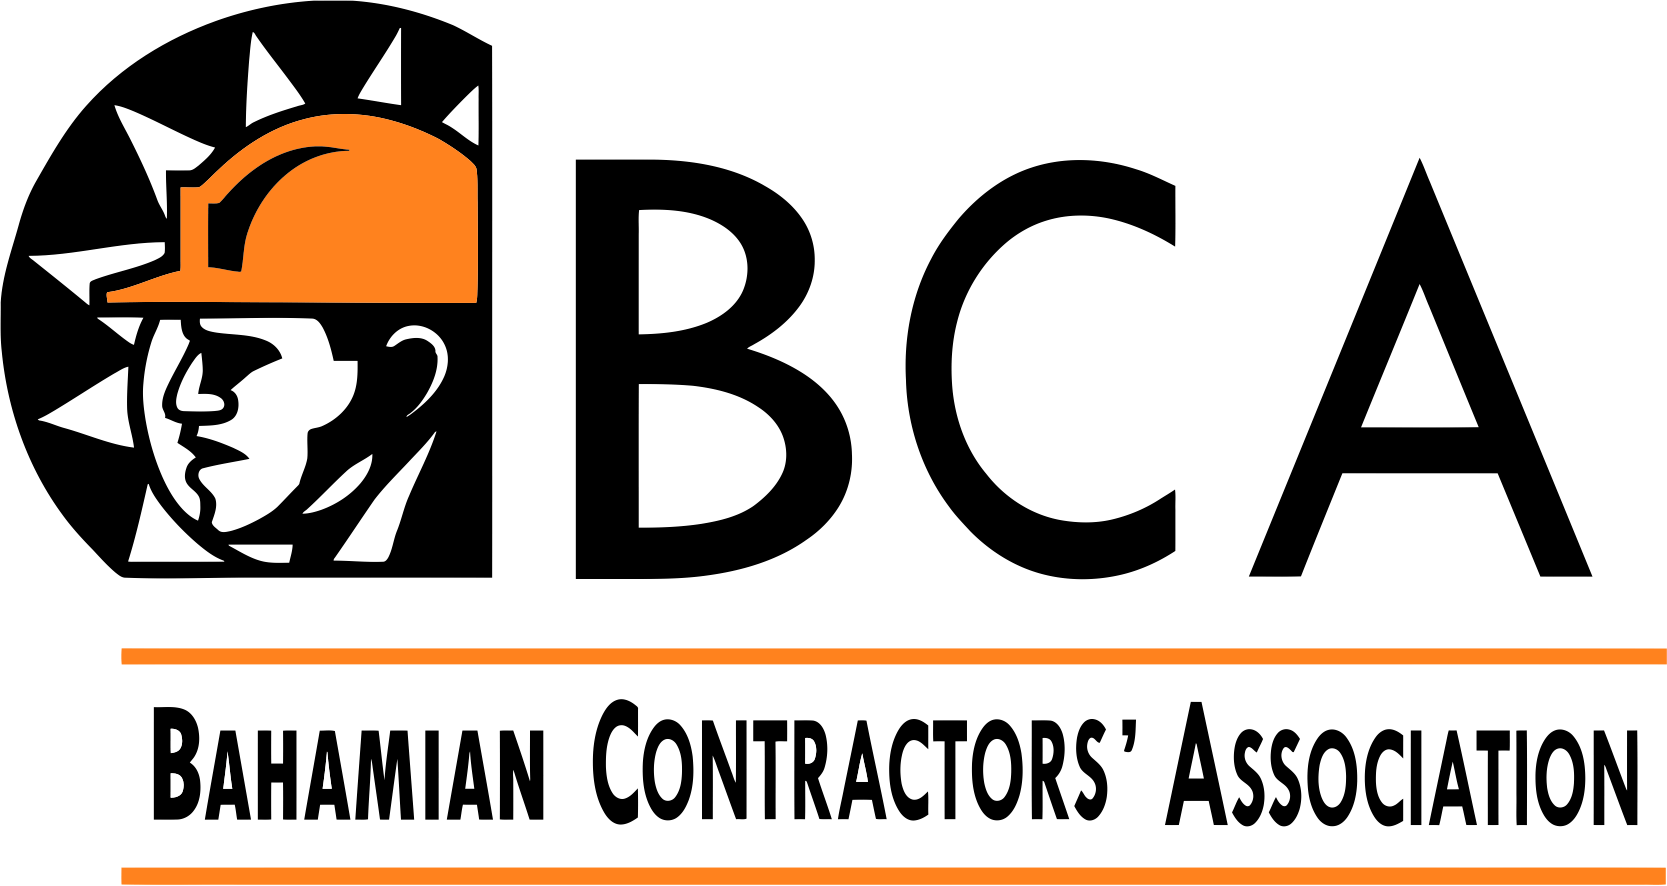 BCA wants more business from foreign developers